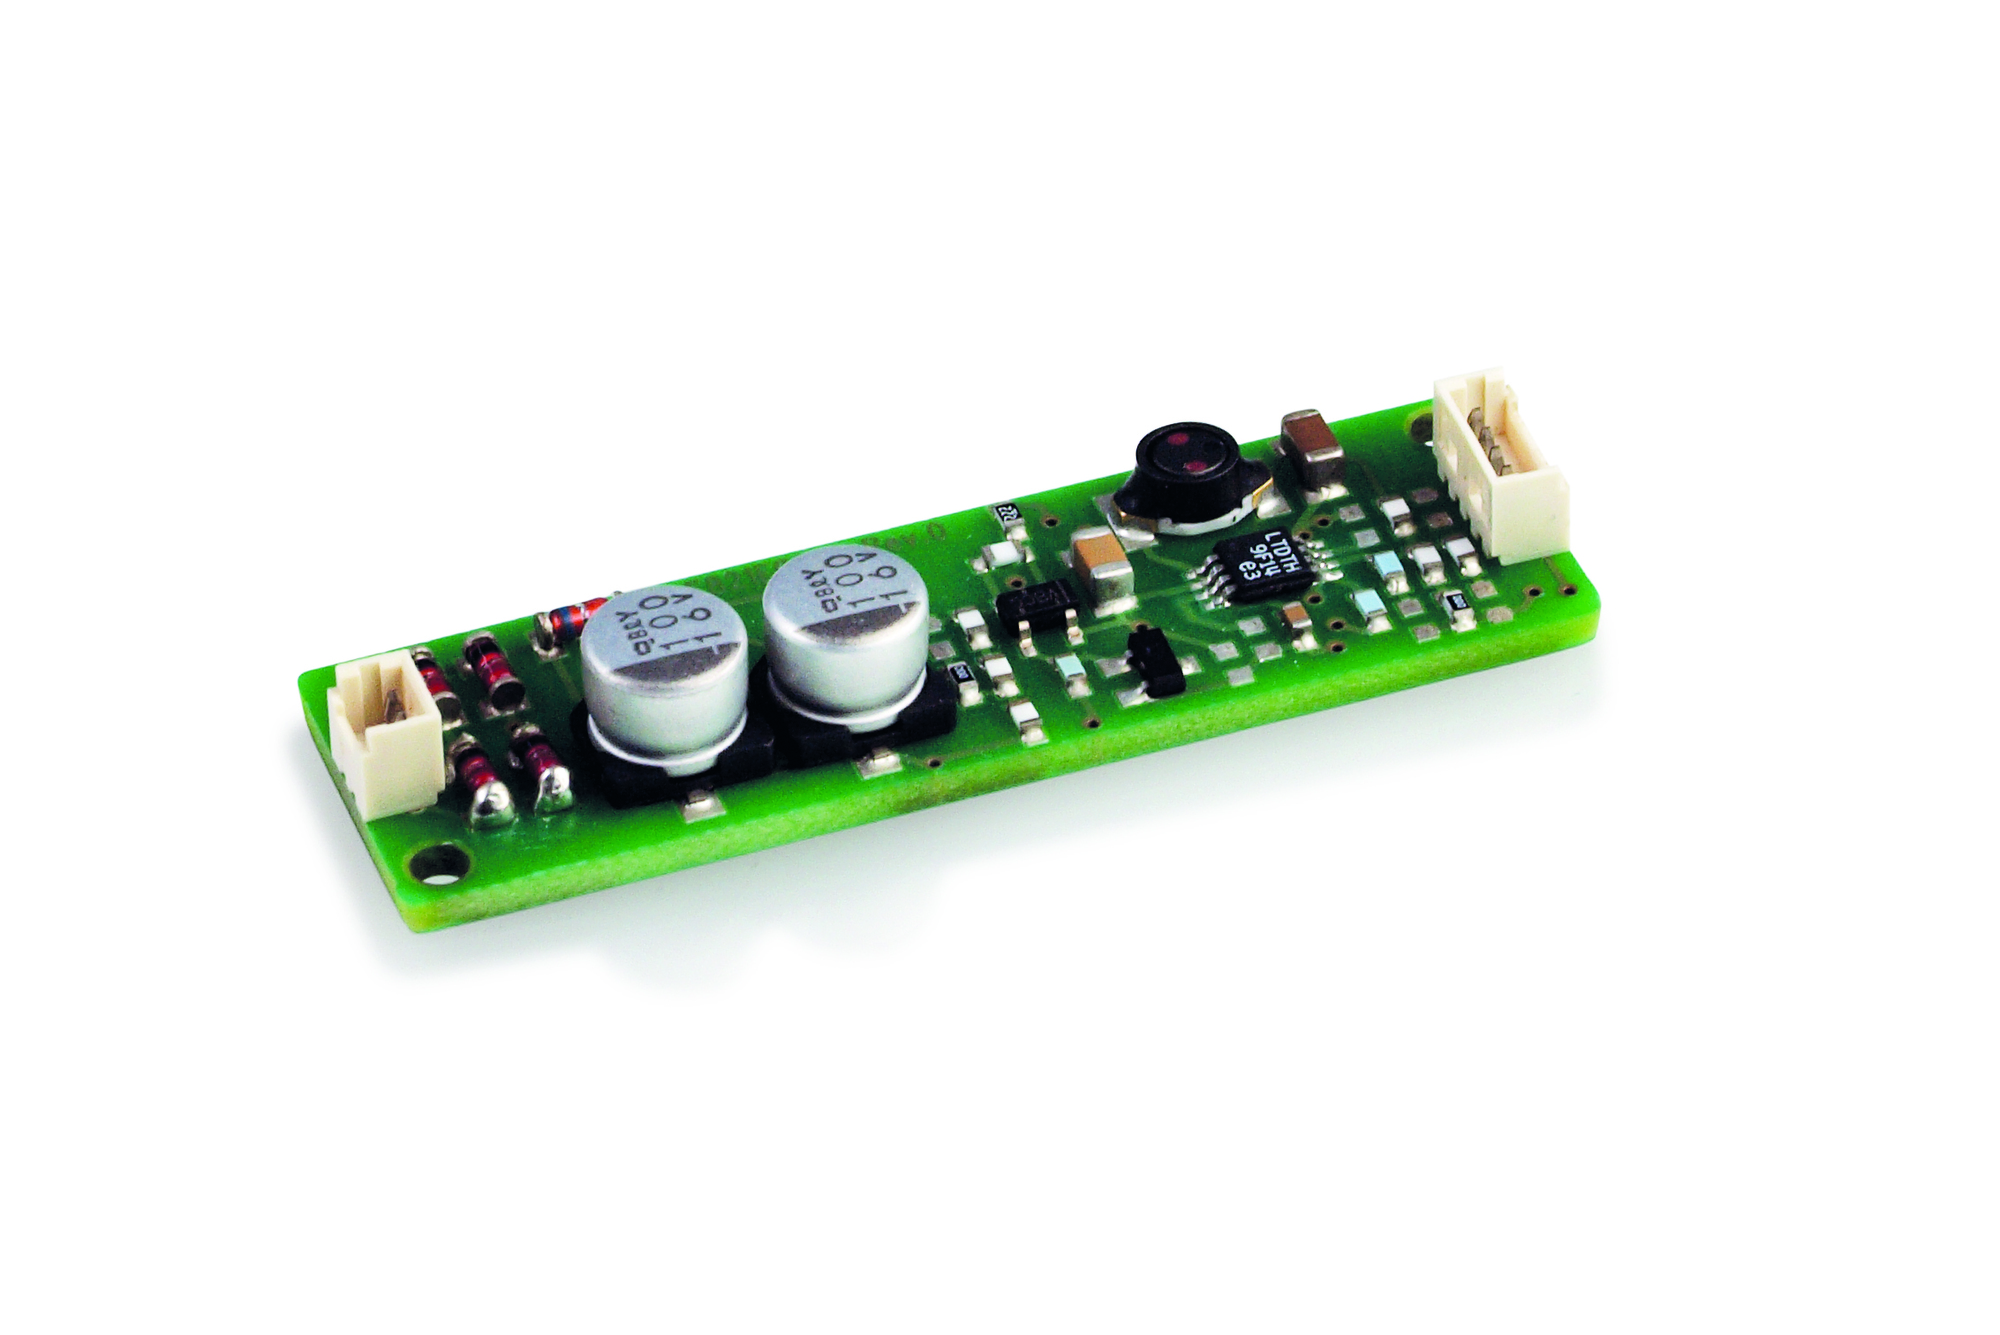 E 821 Electronic Module For Energy Harvesting Buy Integrated Electronics Analog And Digital Circuit English 2nd In Addition To The Transducer Storage 821ehd Evaluation Kit Contains Required Cabling Corresponding Duraact Piezo